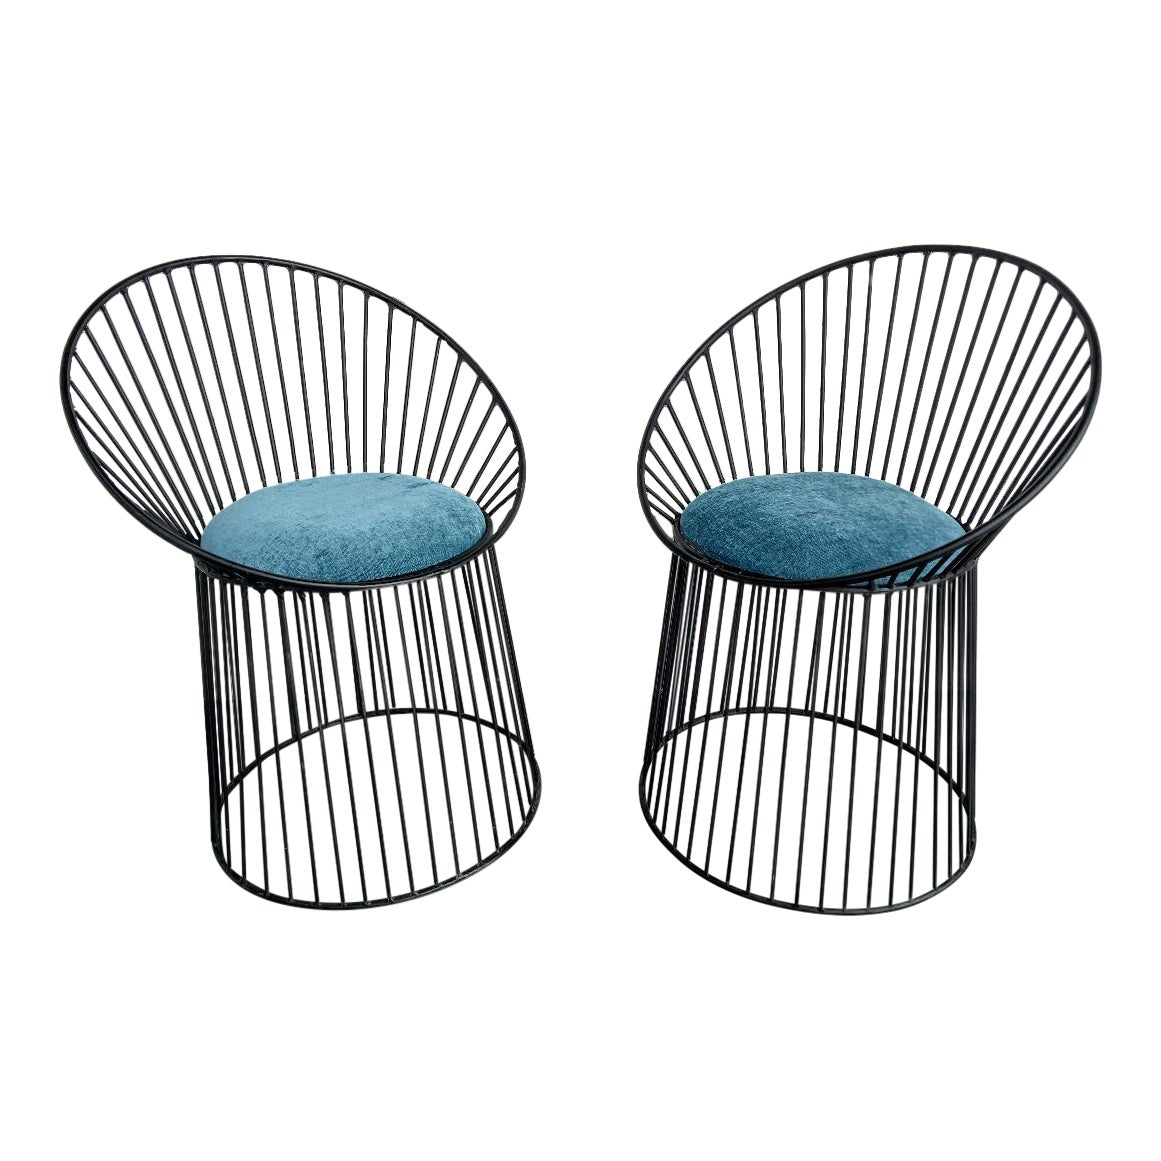 Astounding Platner Styled Metal Accent Chairs A Pair Gamerscity Chair Design For Home Gamerscityorg